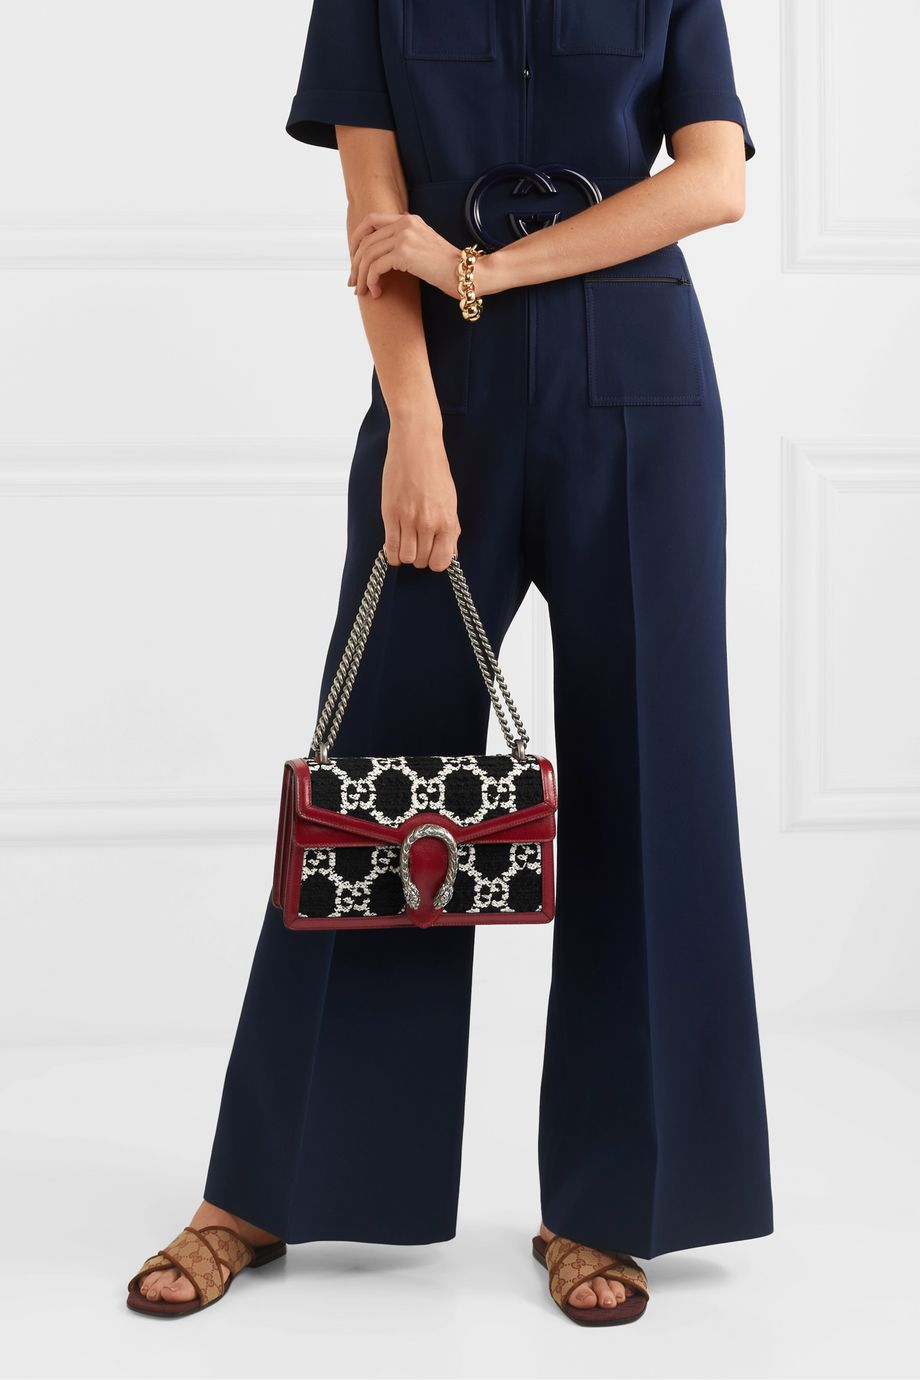 Gucci Dionysus small leather-trimmed tweed shoulder bag